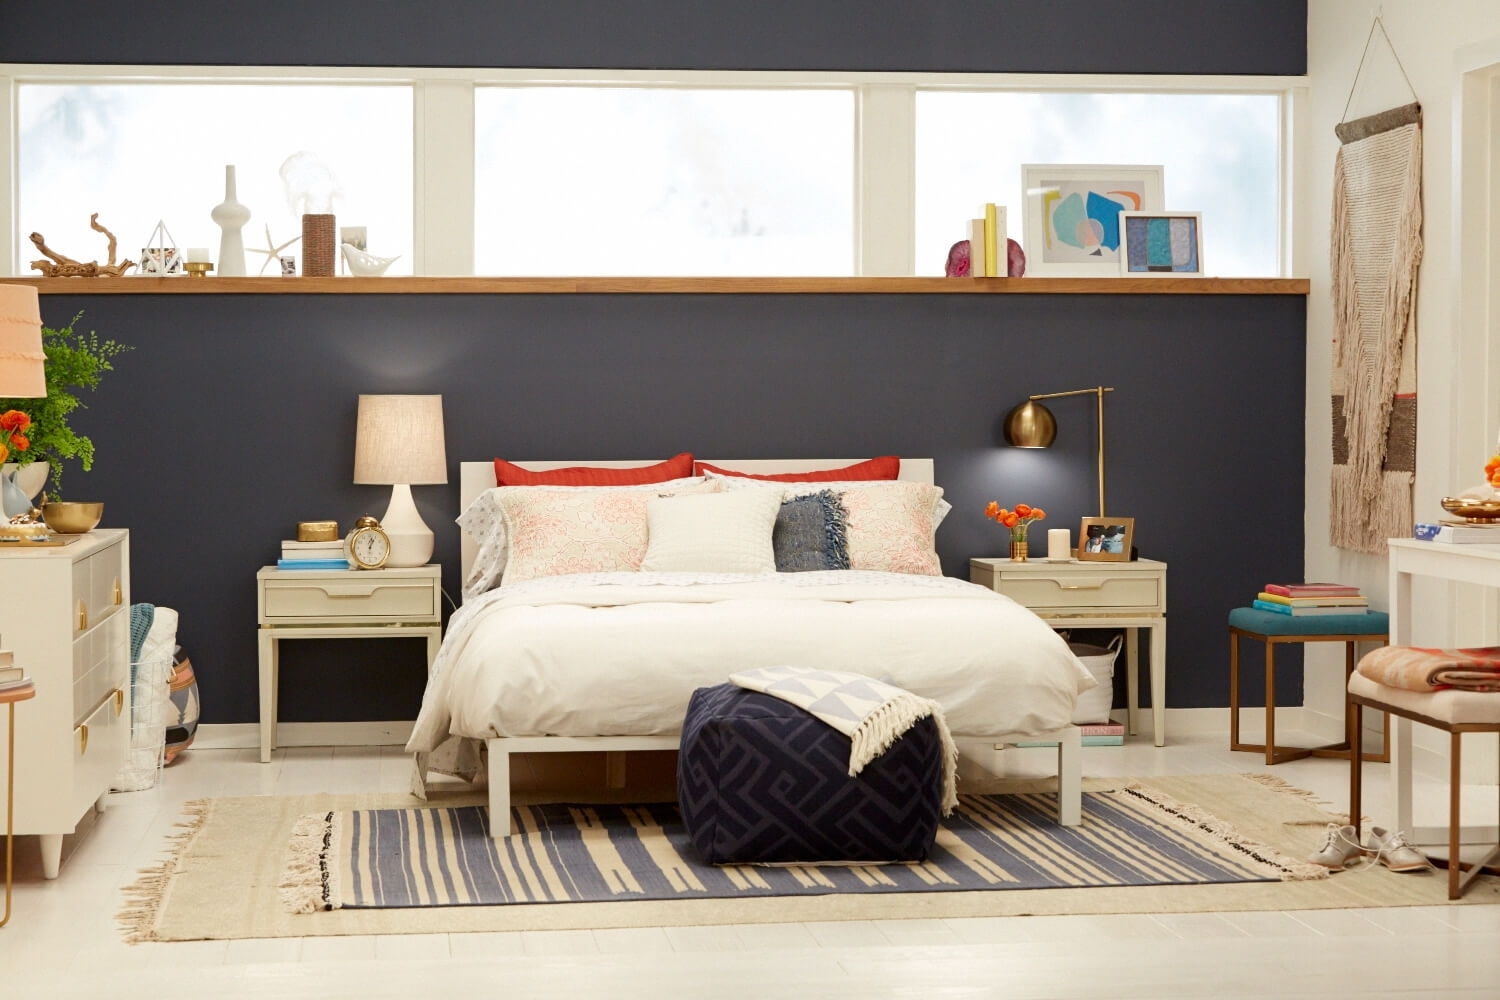 Target Chapter 7; Navy Blue Accent Wall Bedroom Makeover – Emily With Regard To 2018 Navy Wall Accents (Gallery 3 of 15)